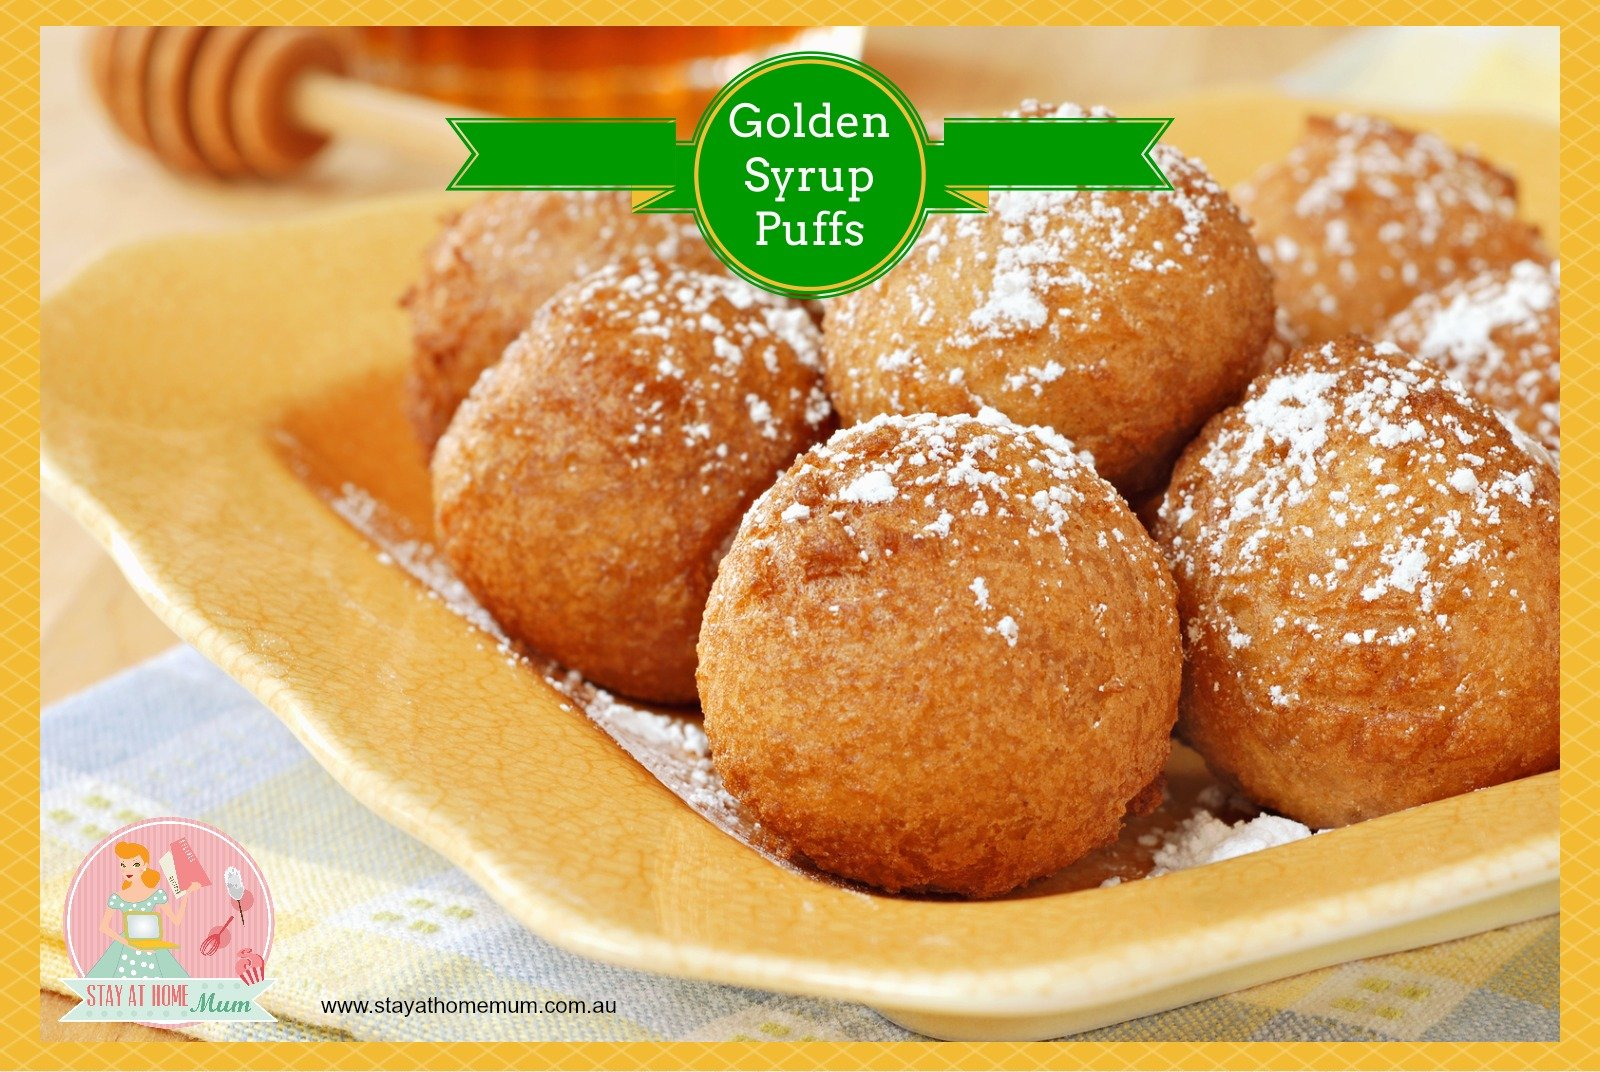 Golden Syrup Puffs Stay At Home Mum